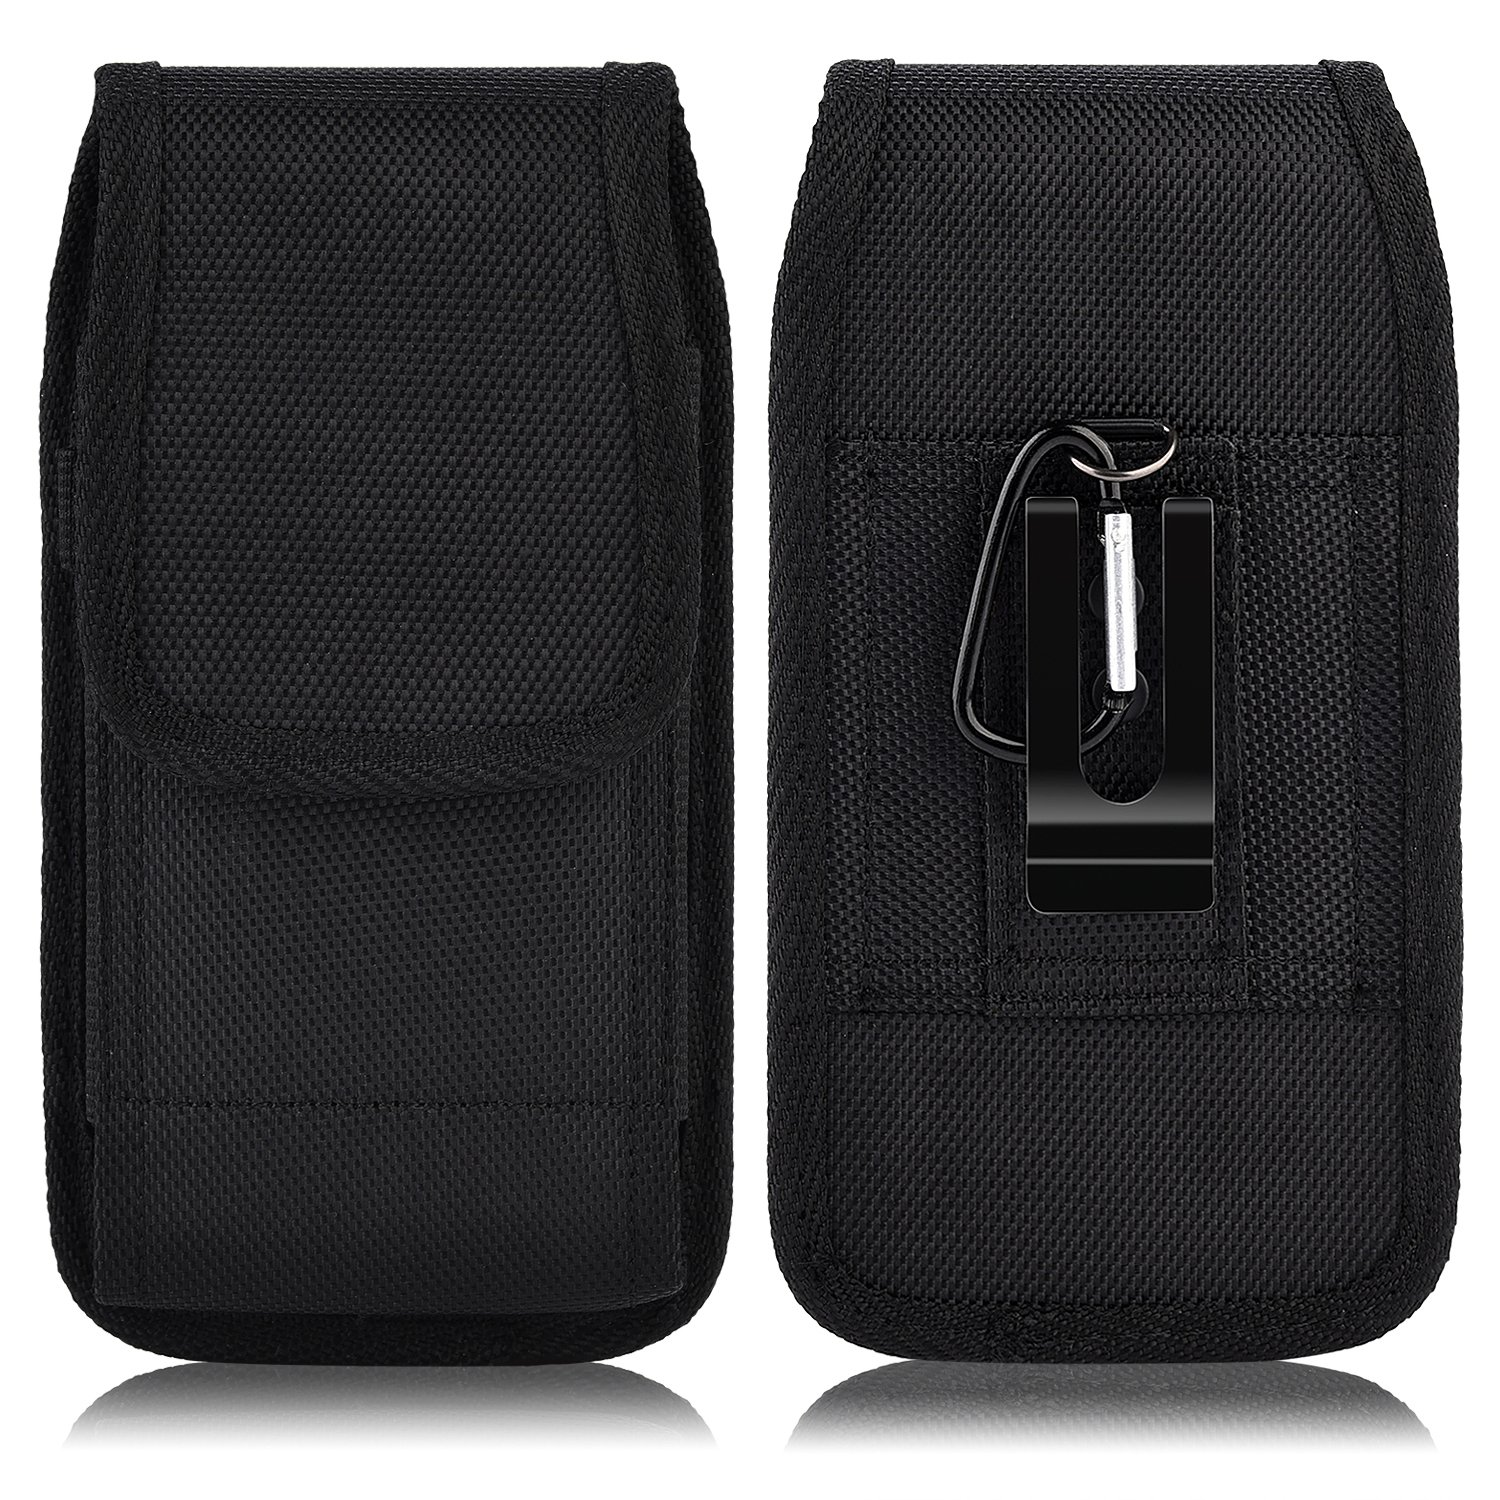 official photos ea35f 04092 iNNEXT Universal Case for iPhone 8 7 Plus Pouch Case, Vertical Holster Belt  Clip Carrying Case Pouch for iPhone X iPhone Xs iPhone XR iPhone 6 ...